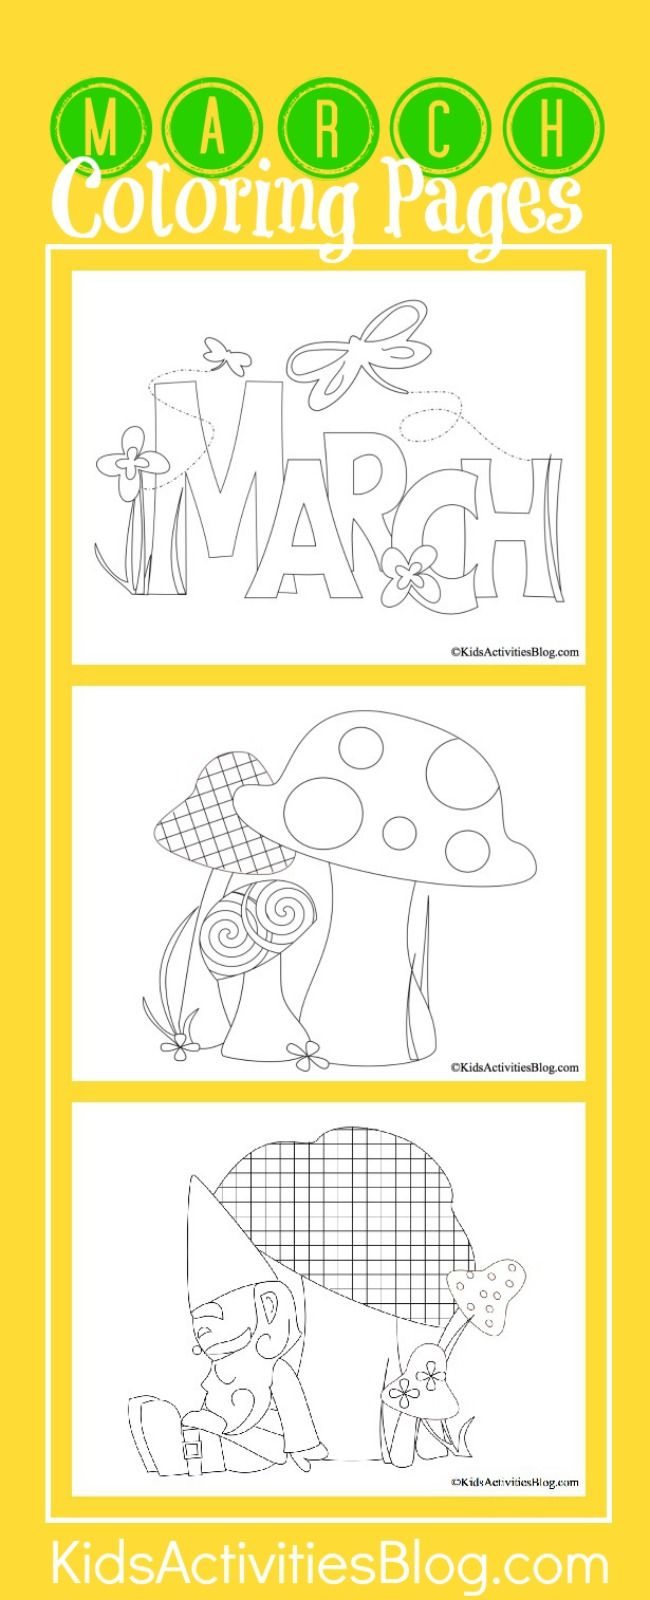 3 Spring March Coloring Pages For Kids Coloring Pages For Kids Coloring Pages March Colors